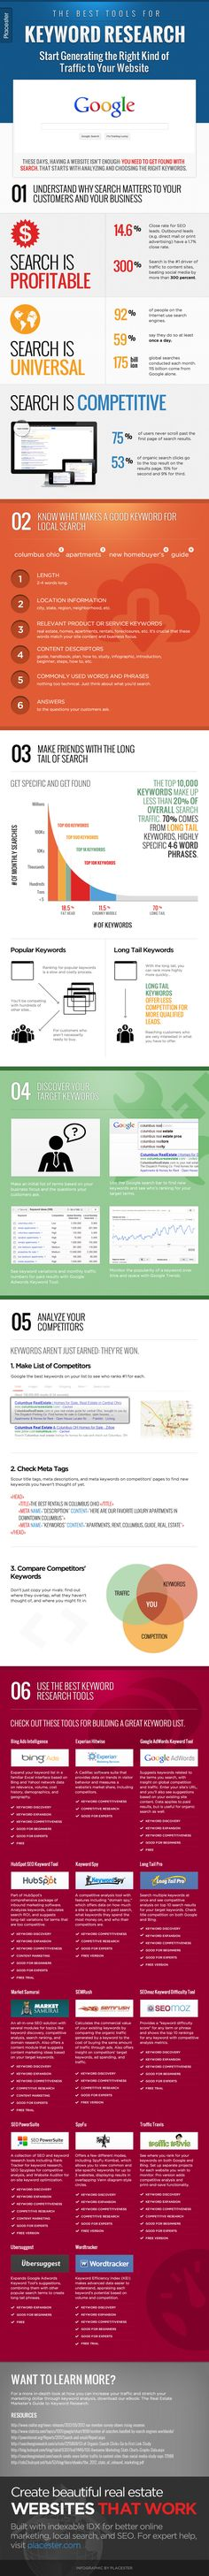 How to generate the right traffic with search #SEO #infographic